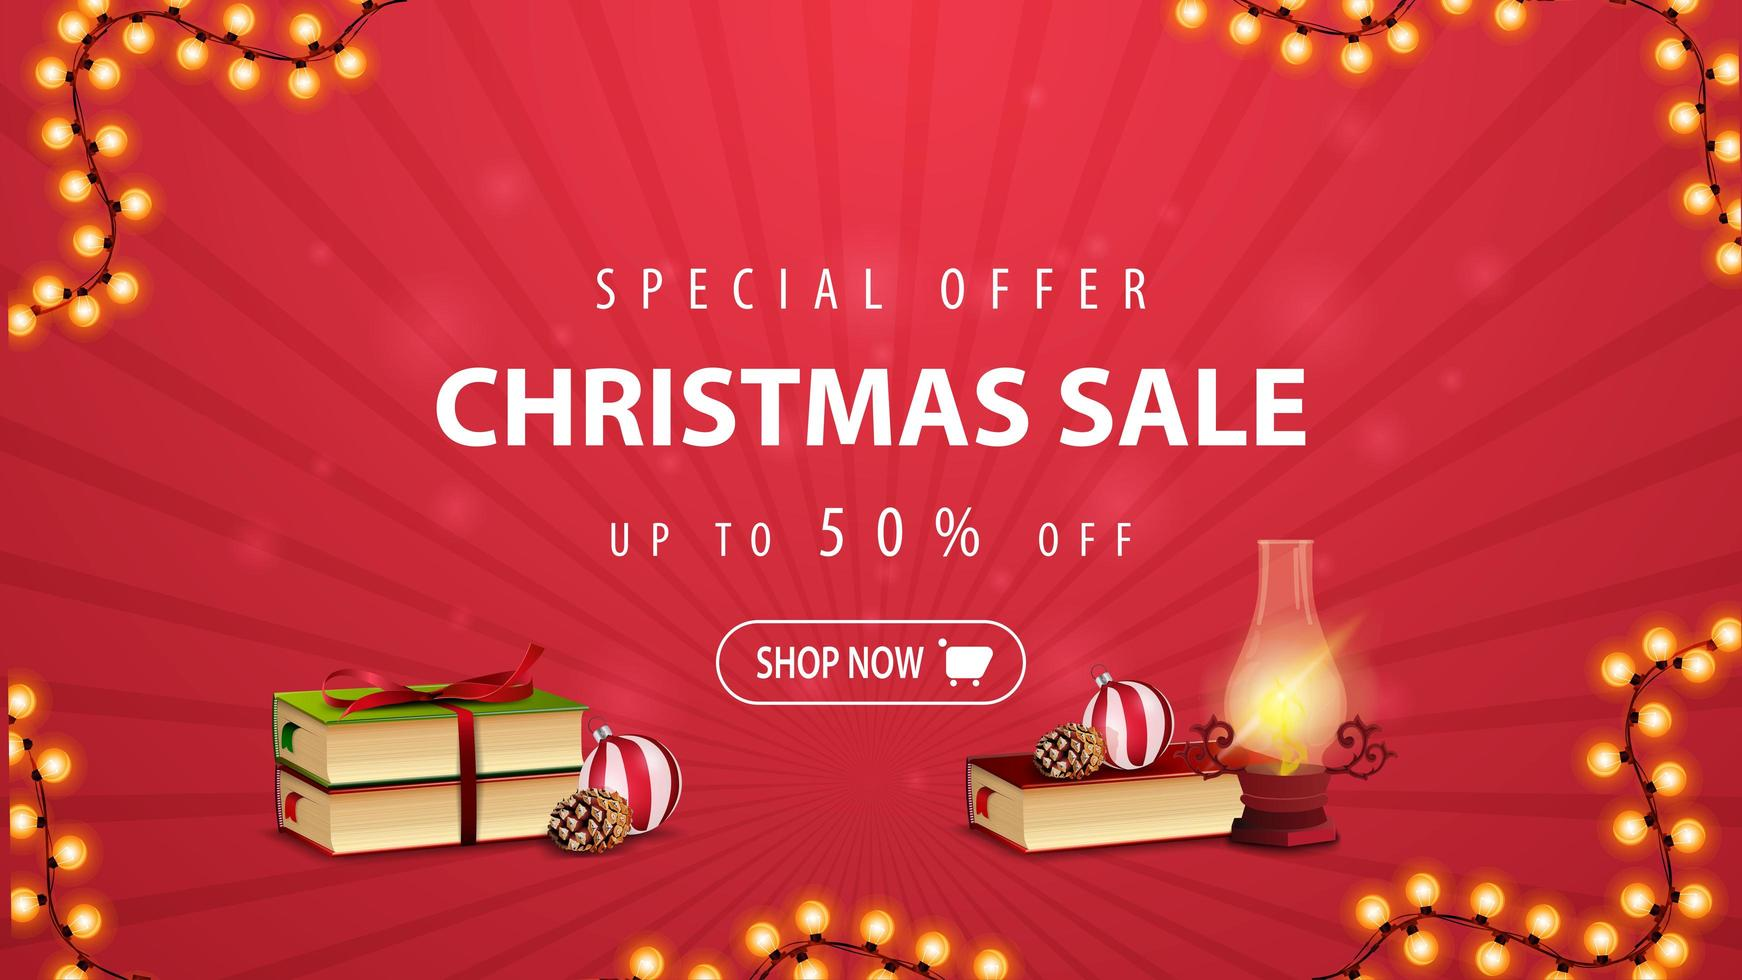 Special offer, Christmas sale, up to 50 off, red discount banner with antique lamp, Christmas books, Christmas ball and cone vector